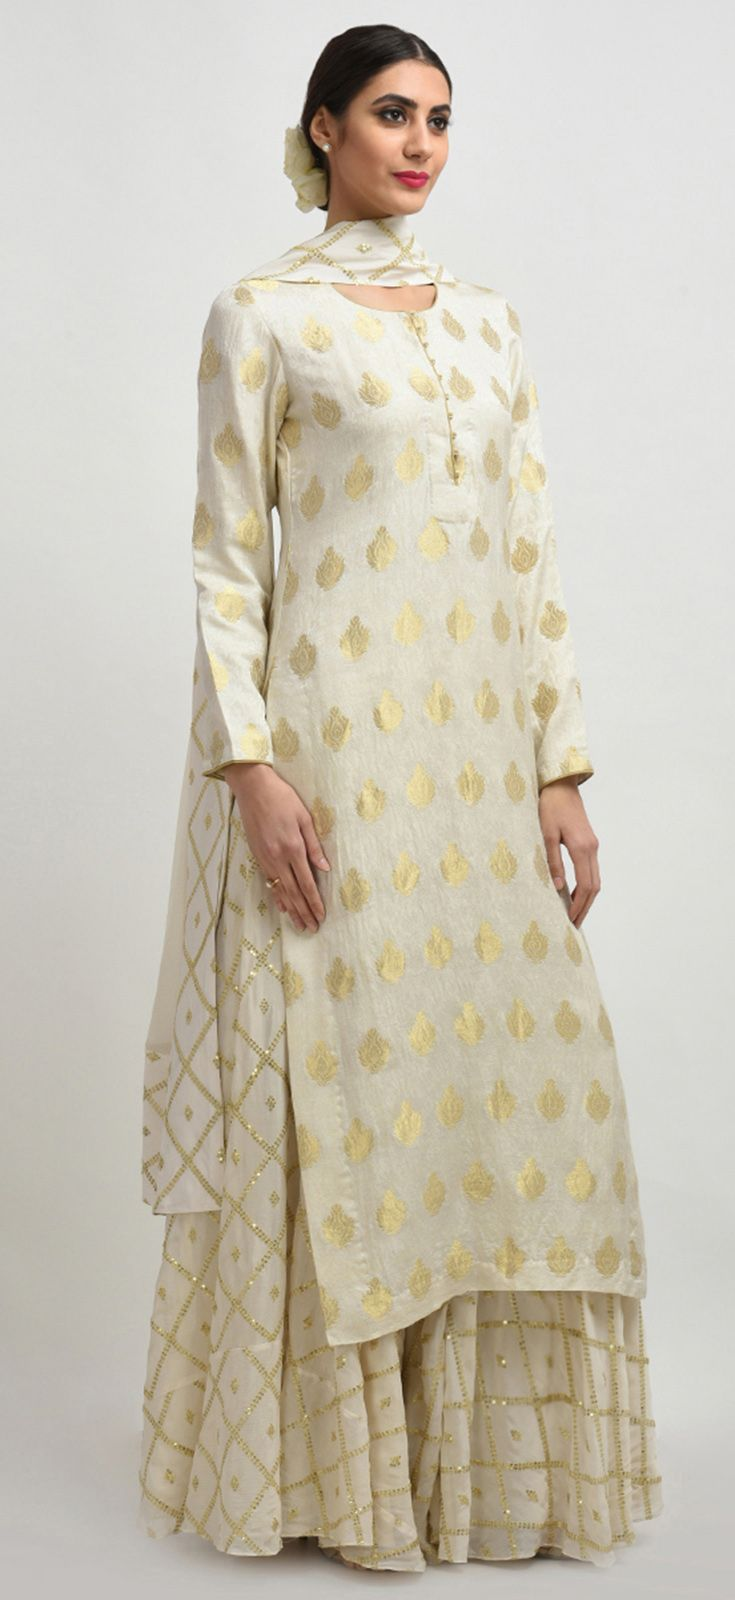 Ivory Banarasi Handwoven Zari And Sequin Embroidered Sharara Suit #shararadesigns